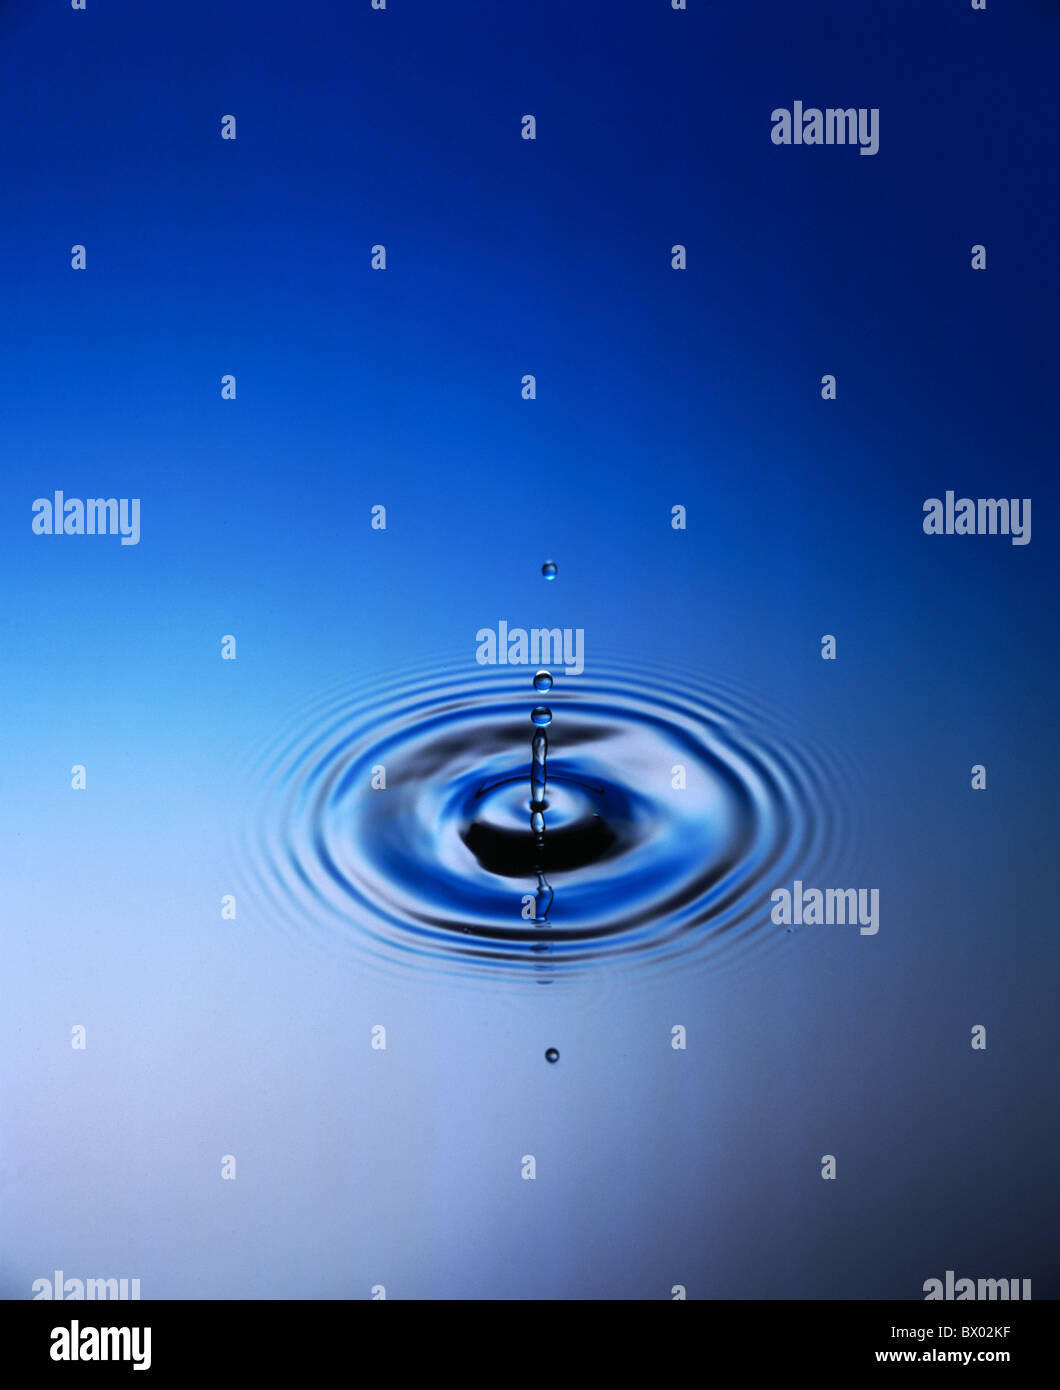 rings drops drips waters drops of water circles rings level ribs waves - Stock Image